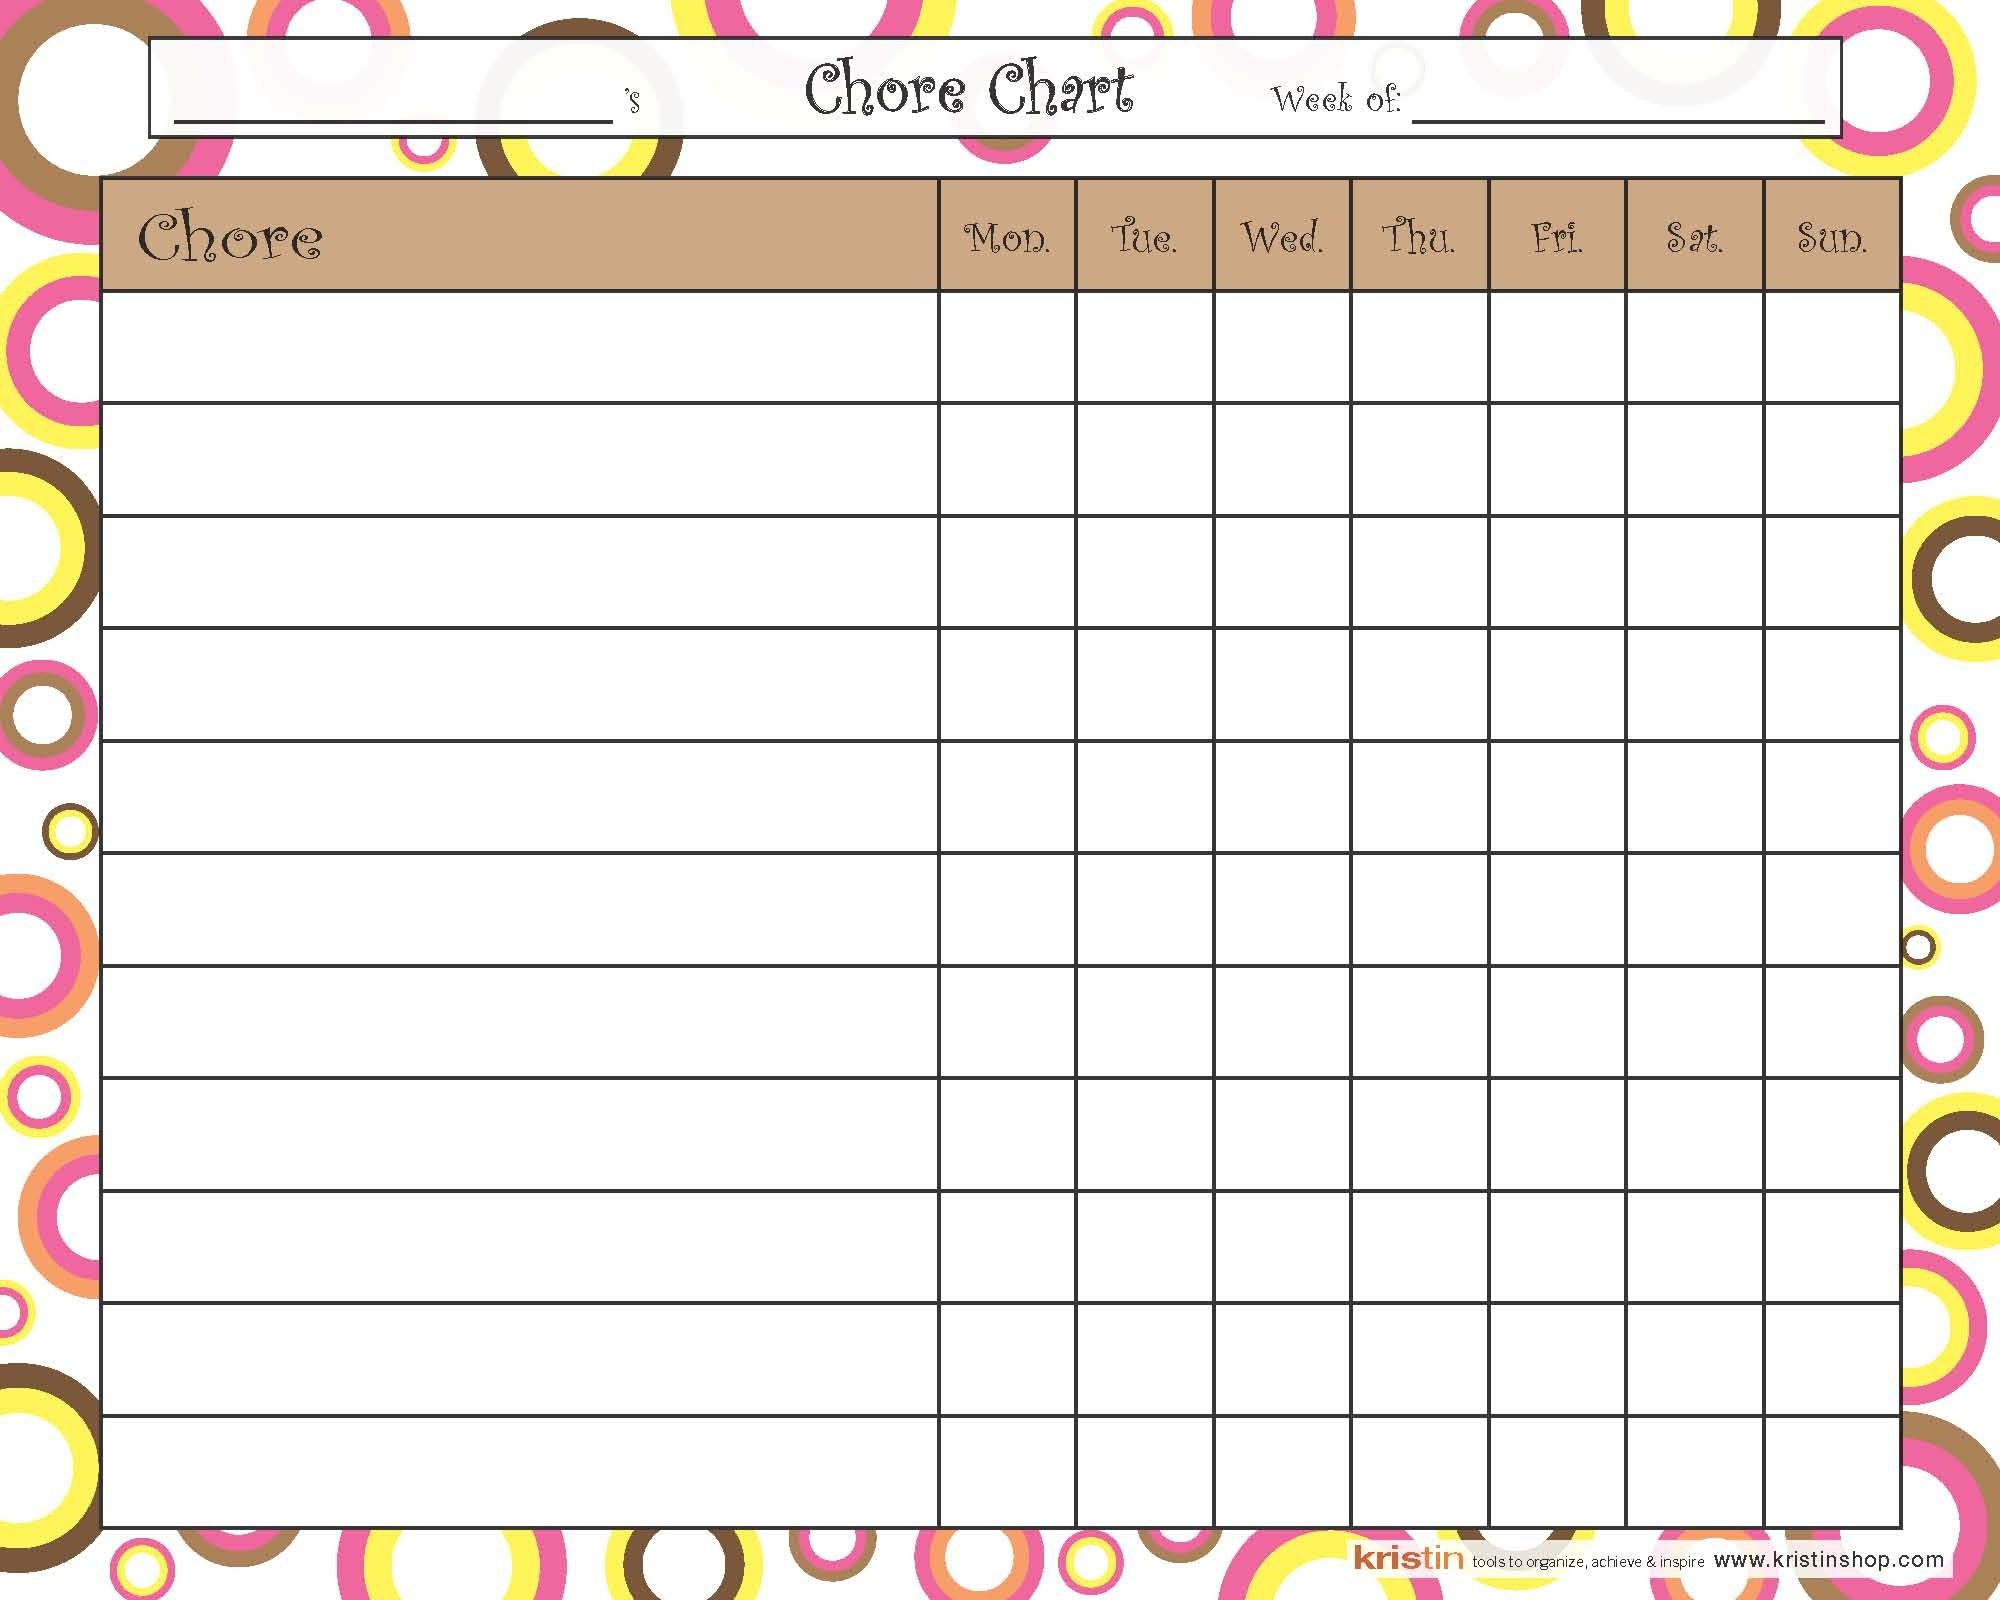 Chore Chart - Circles: For Children, Toddlers, Teens, Kids, Boys, Girls, 50 pages Notepad, Tear-Off Sheets